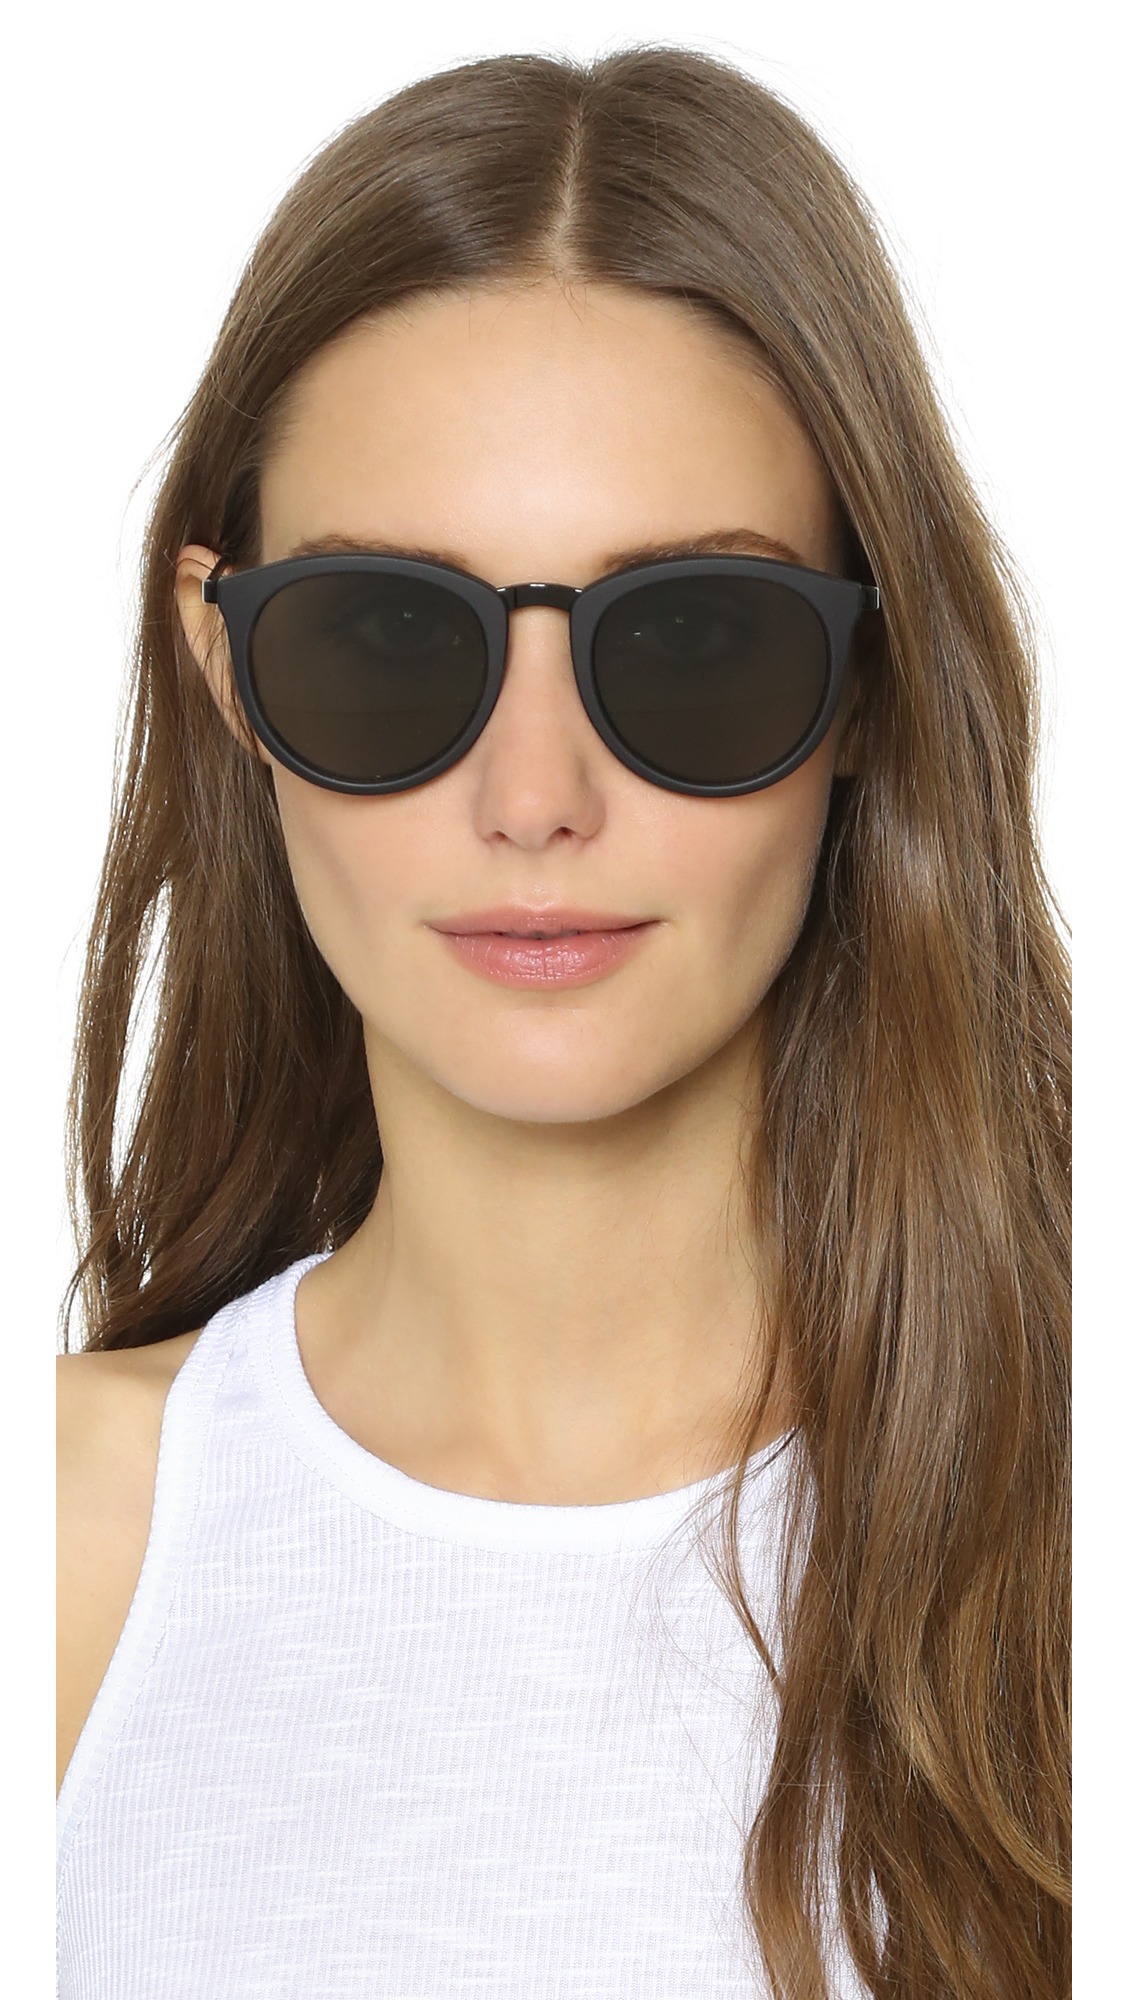 cc8ee687123 Le Specs No Smirking Sunglasses